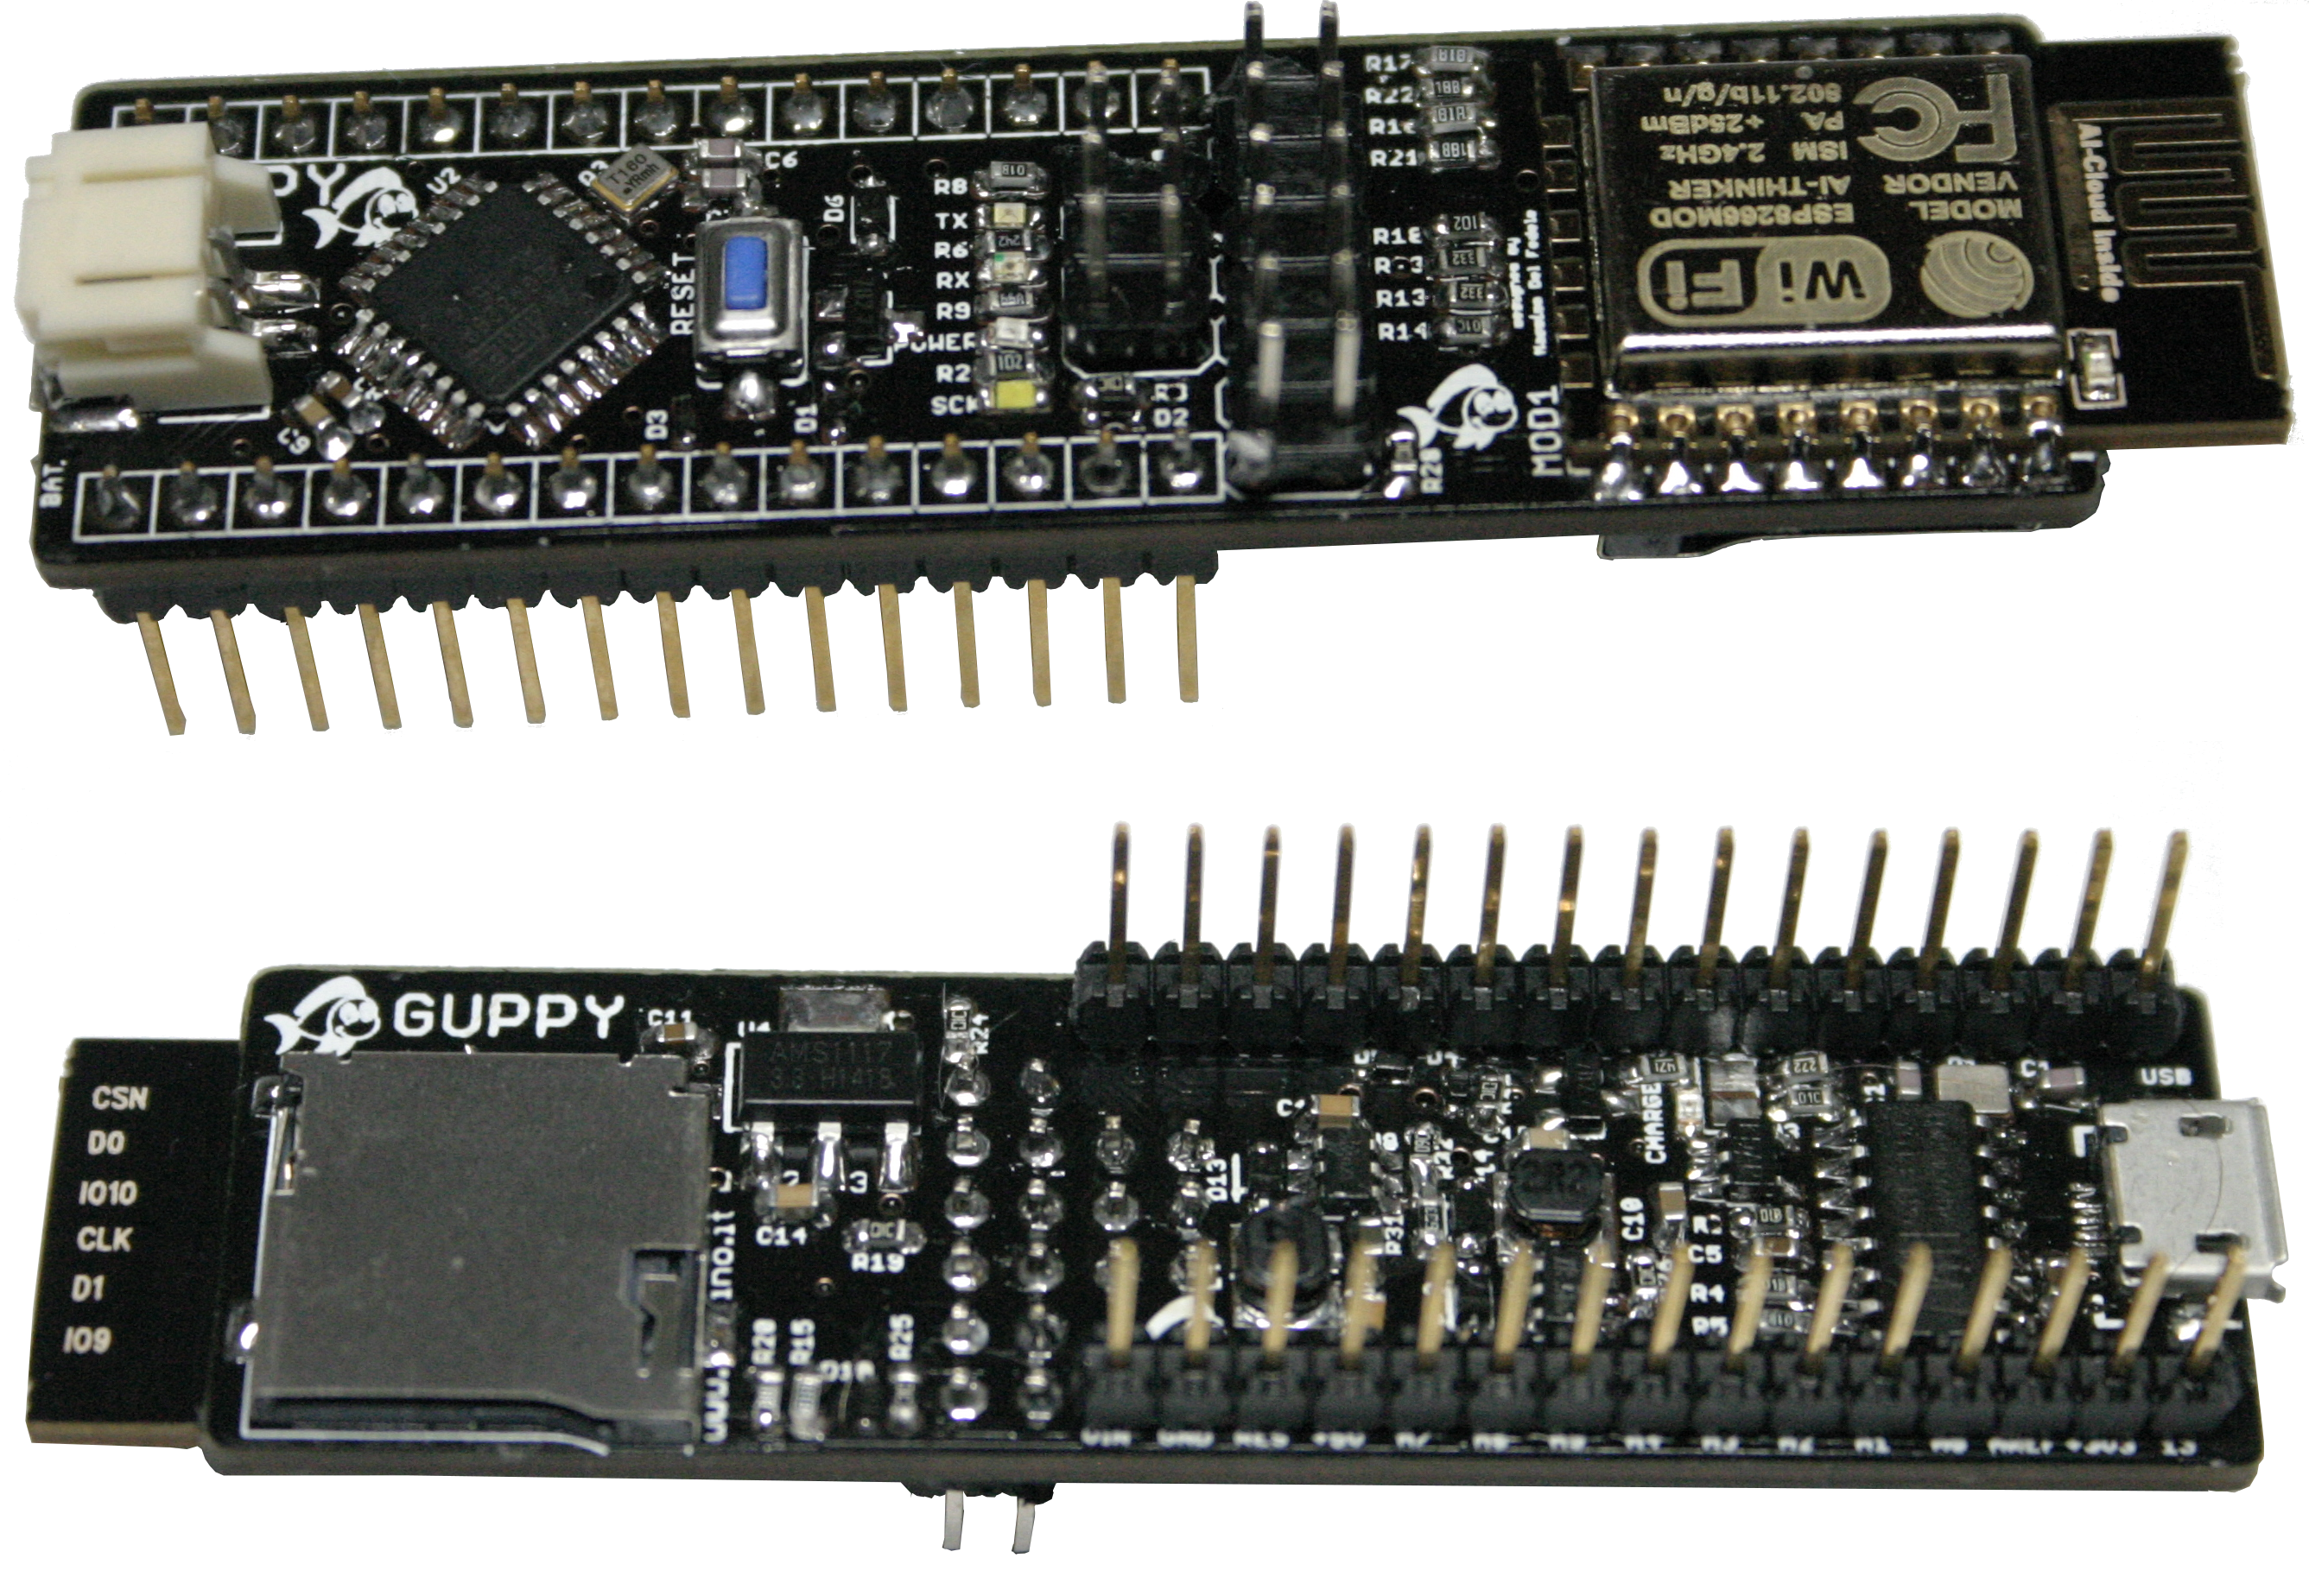 Fishino Guppy Pinout Scheme Available Now Open Electronics Arduino Isp In System Programming And Standalone Circuits